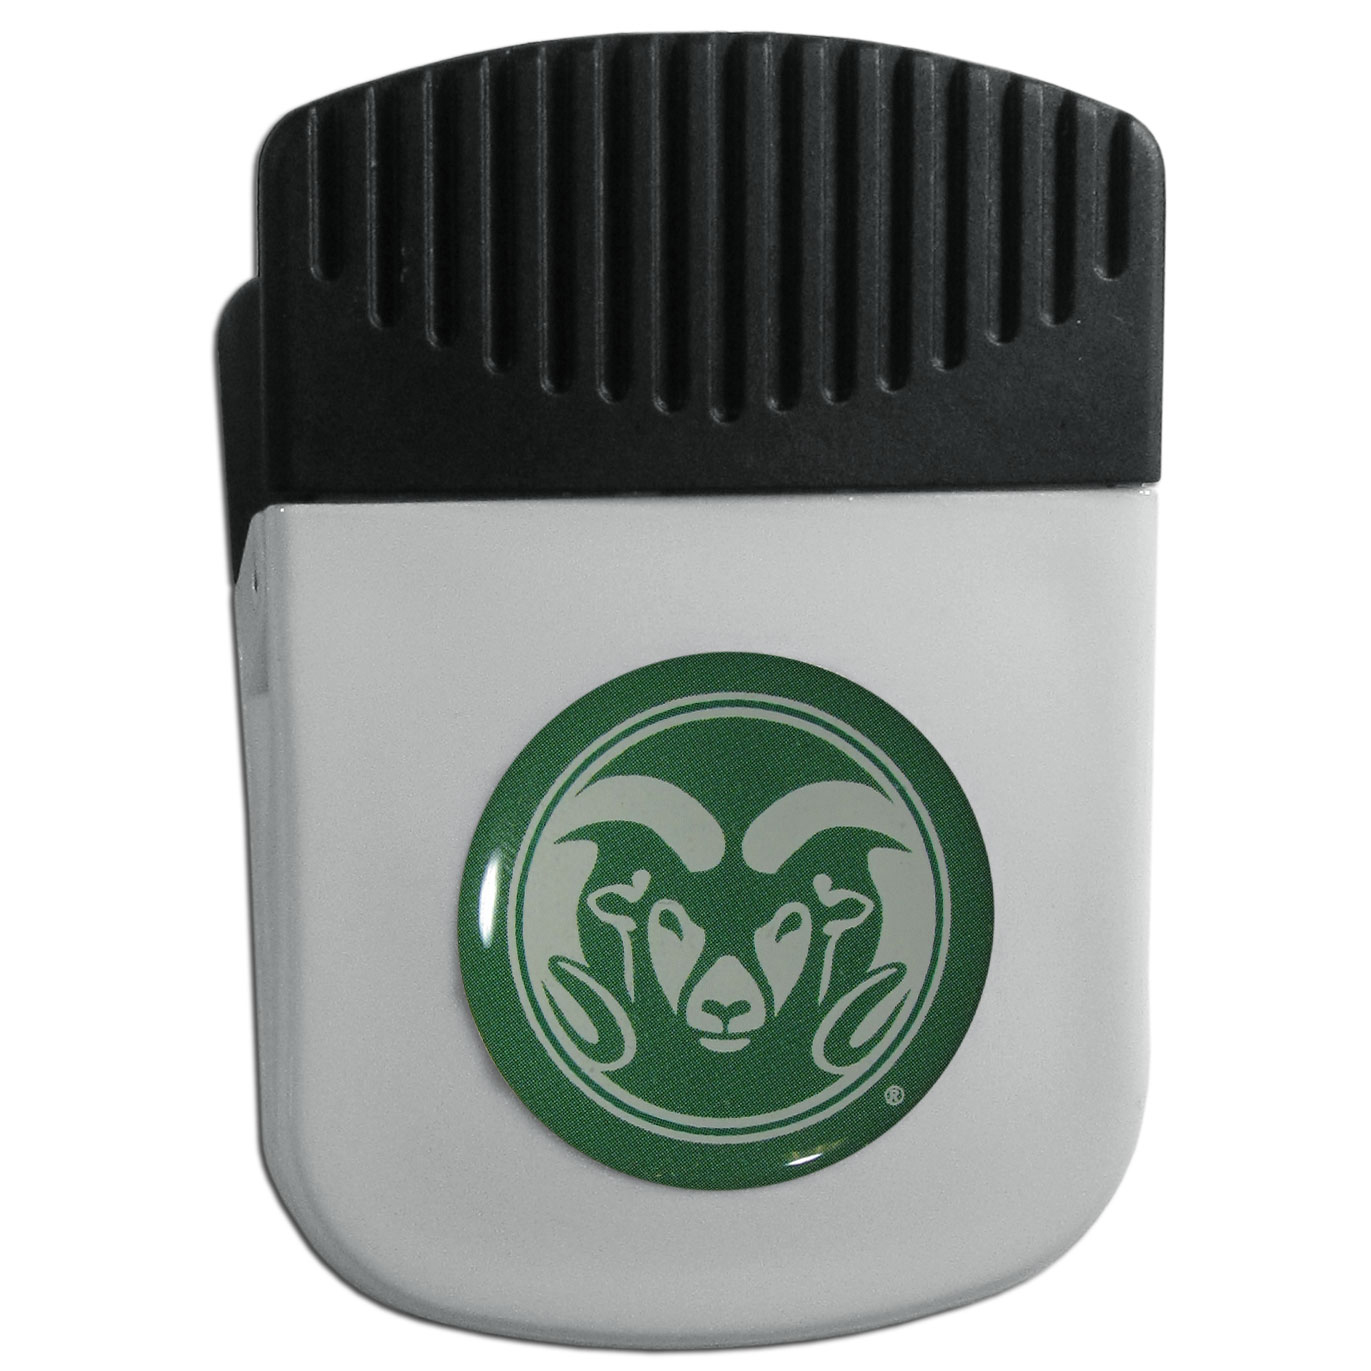 Colorado St. Rams Chip Clip Magnet - Use this attractive clip magnet to hold memos, photos or appointment cards on the fridge or take it down keep use it to clip bags shut. The magnet features a domed Colorado St. Rams logo.